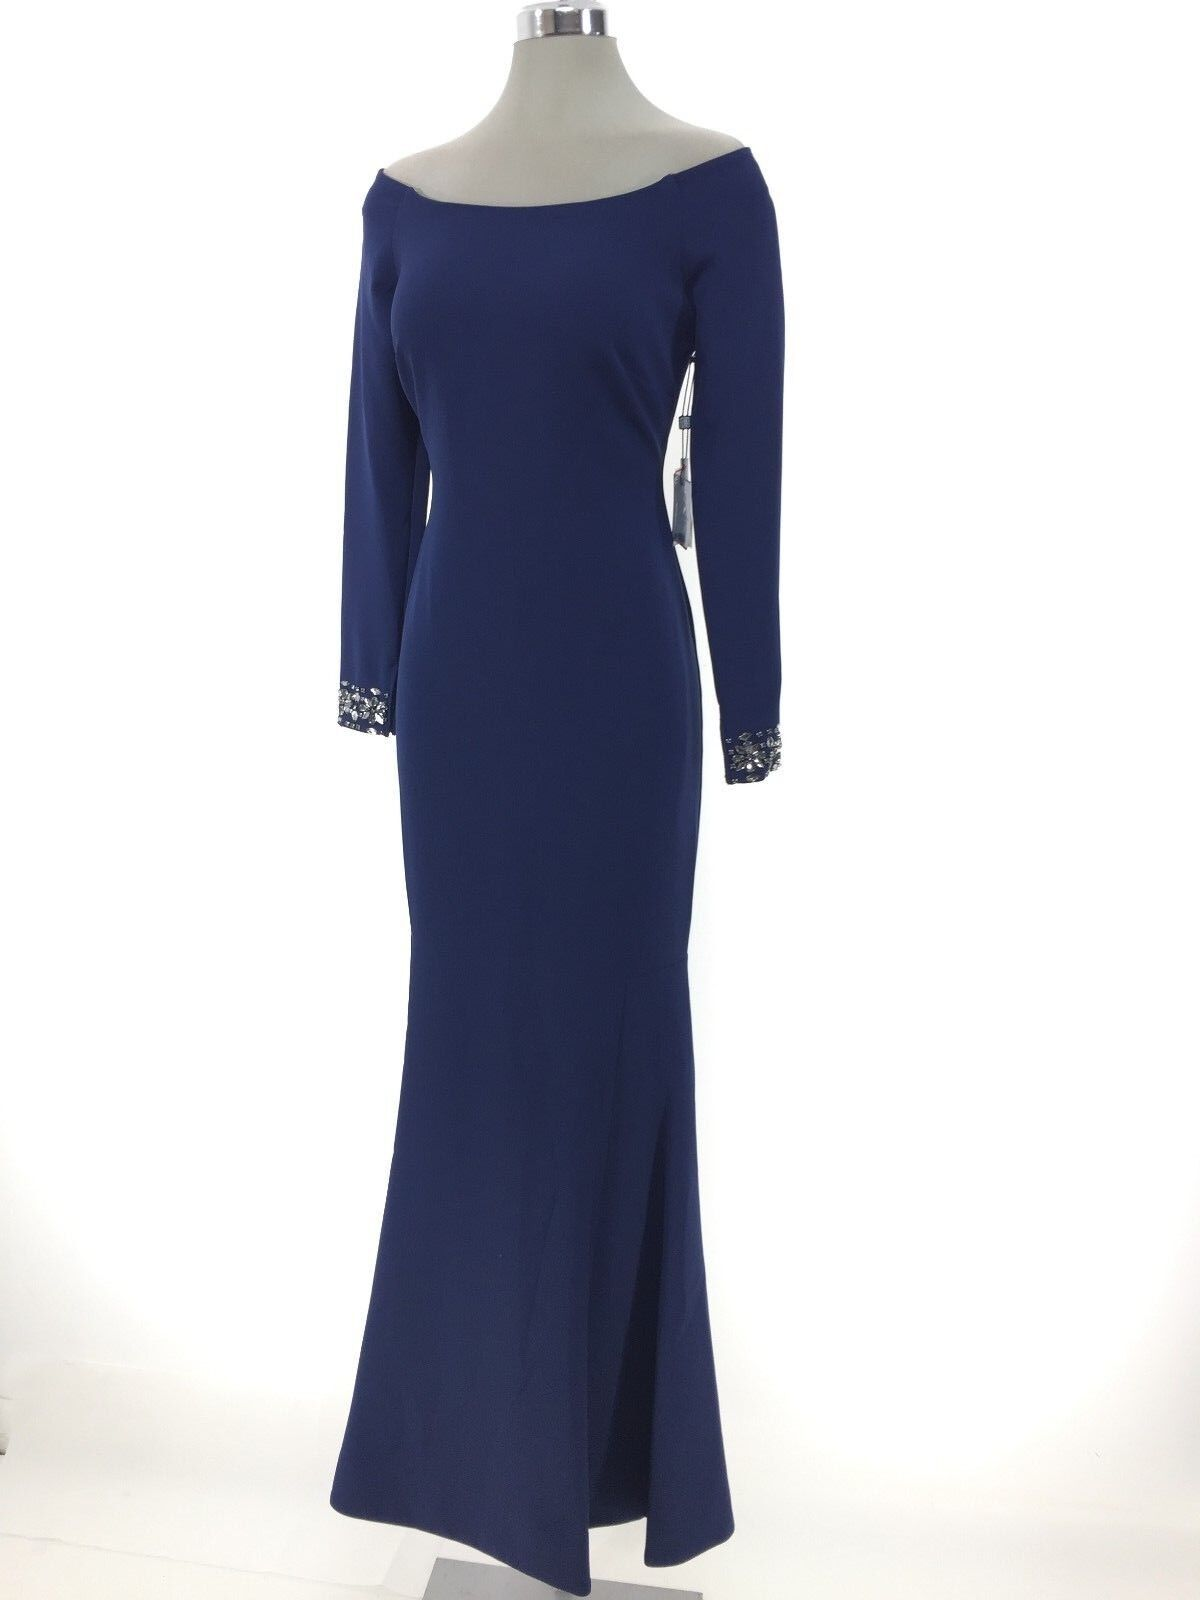 Laundry by Shelli Segal NWT Midnight Navy Formal Dress OFF Shoulder size 2, 4